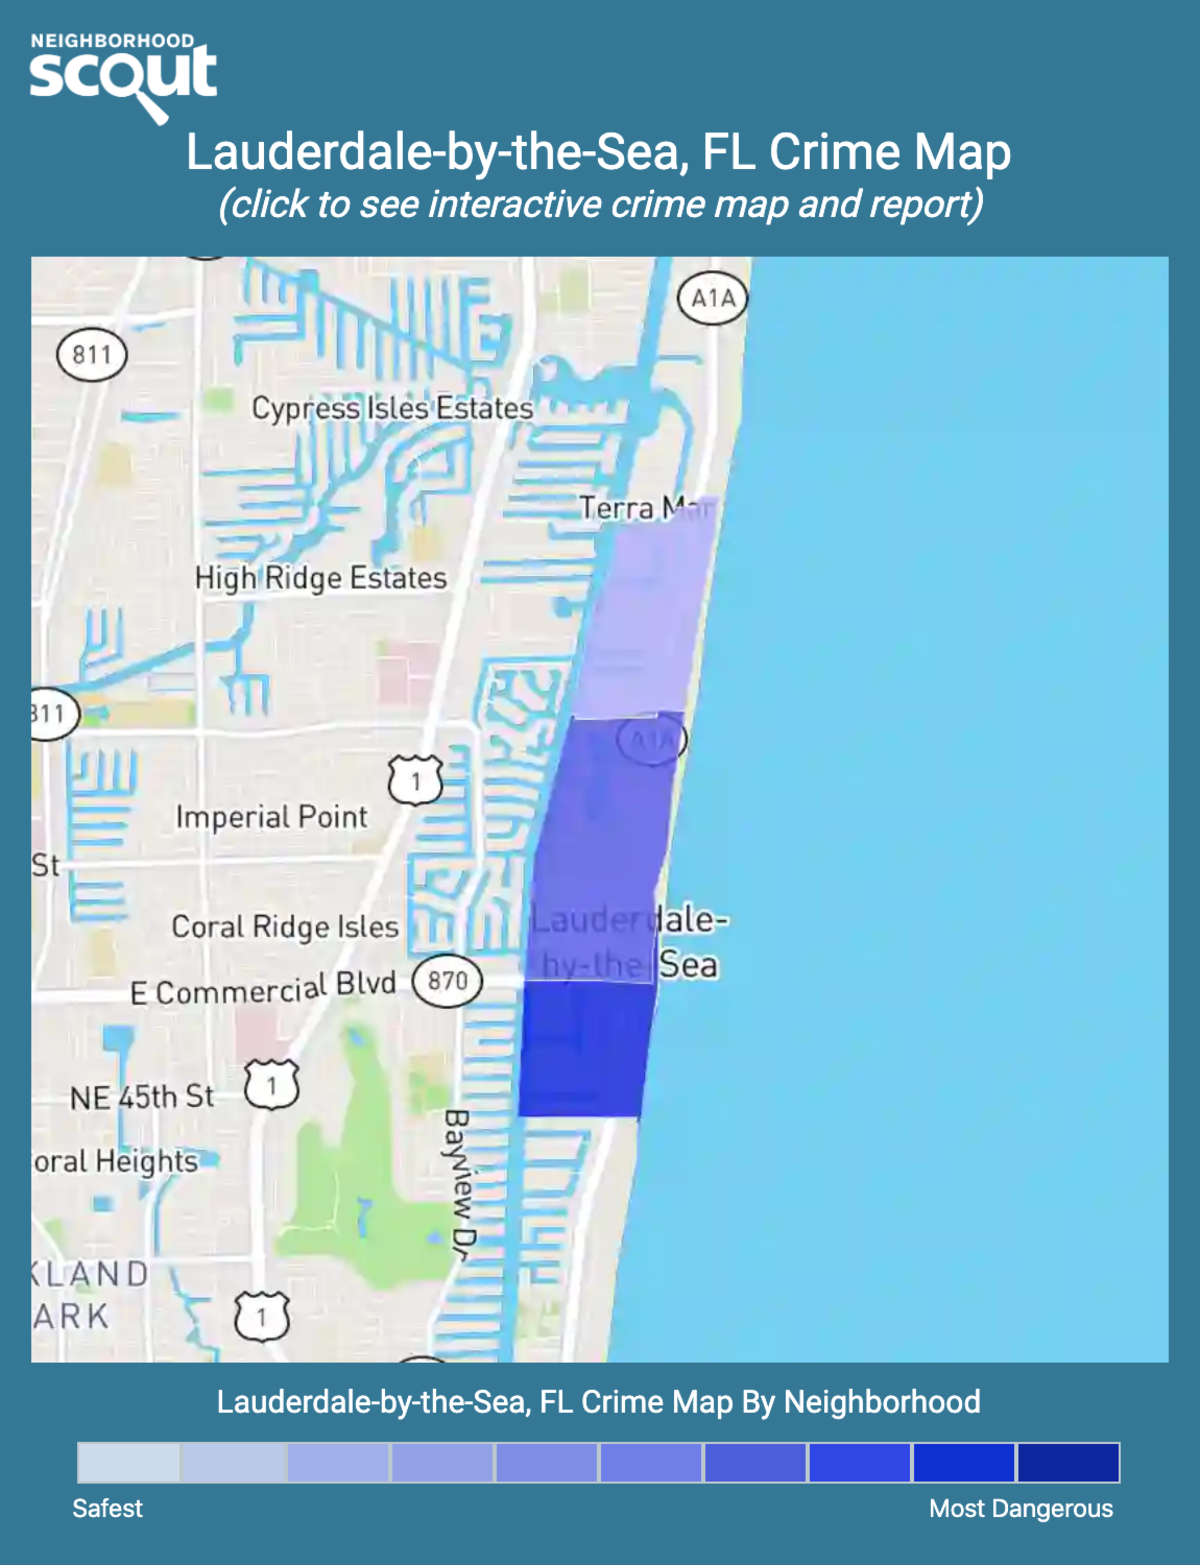 Lauderdale-by-the-Sea, Florida crime map